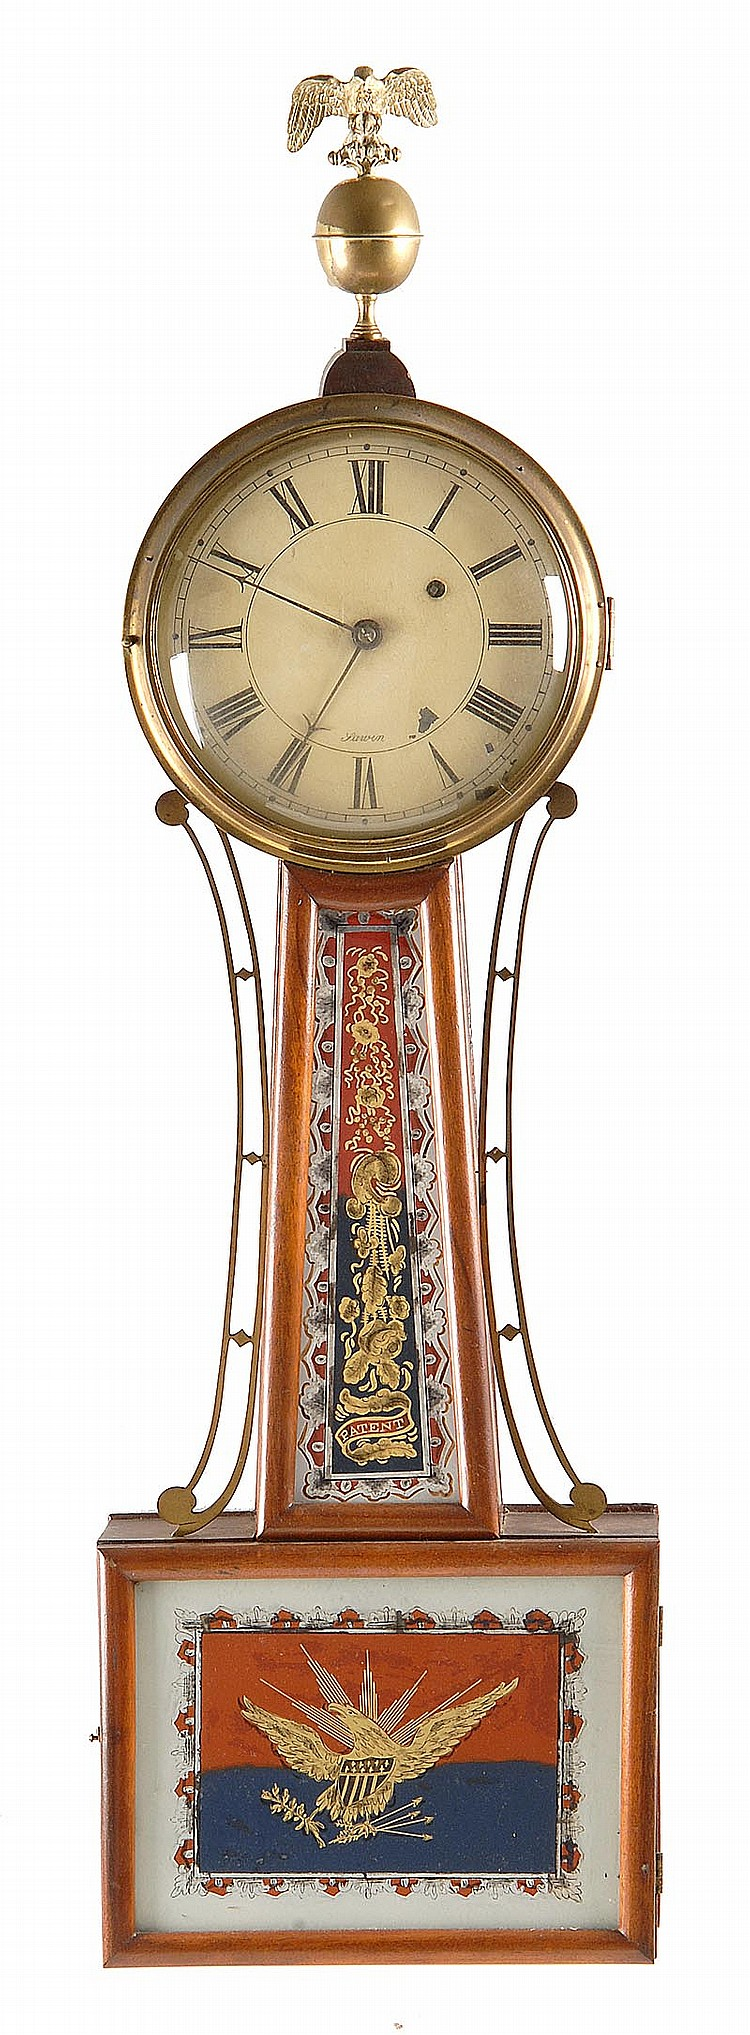 ANTIQUE AMERICAN BANJO CLOCK By John Sawin. Mahogany case with eagle finial. Reverse painted throat and door glass. Door glass depic...